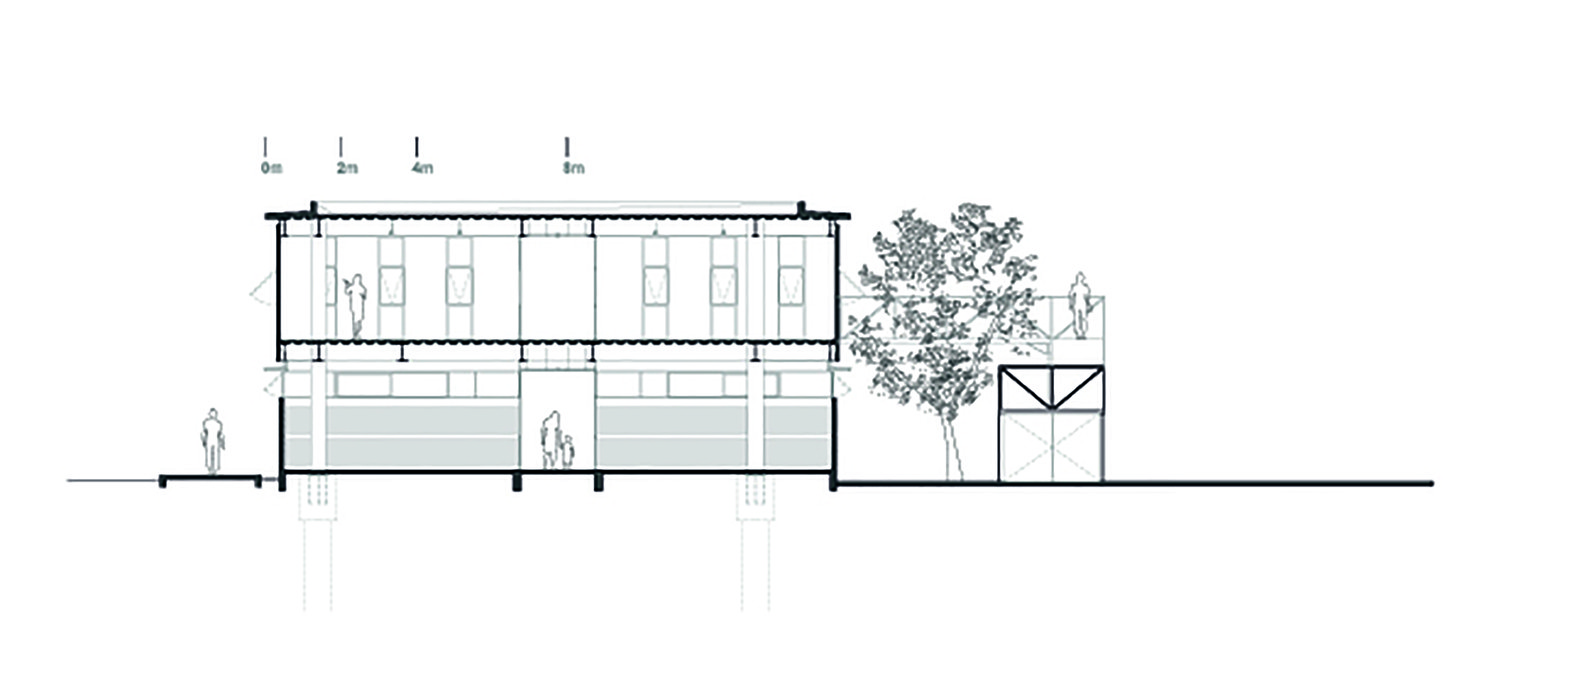 Gallery of Pre-School Building / Miguel Montor - 24